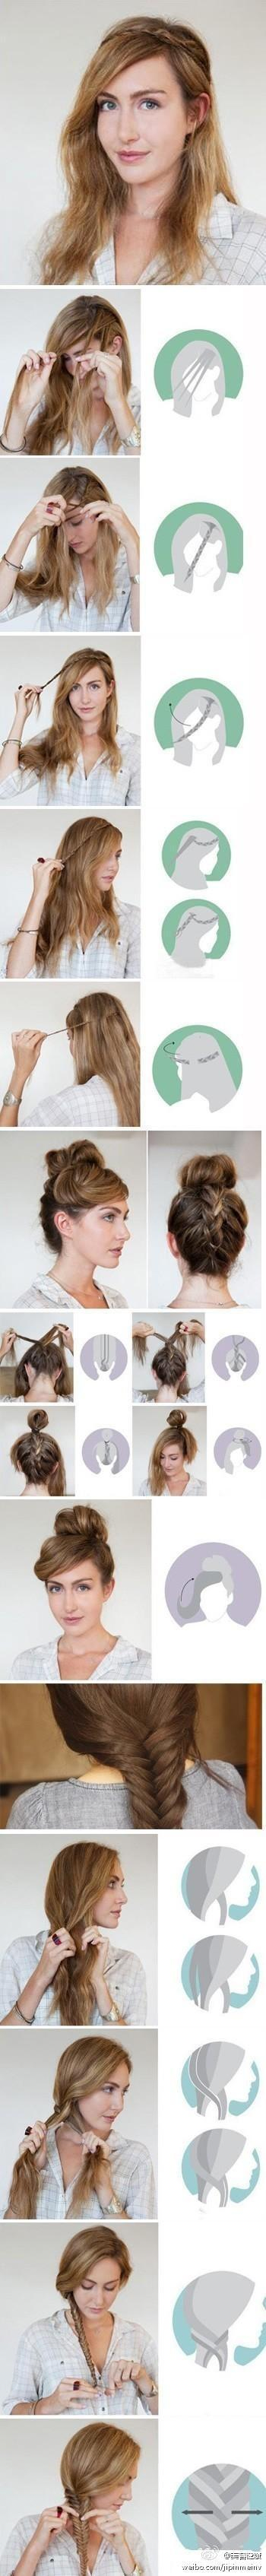 Short Hairstyles Tutorials Tumblr